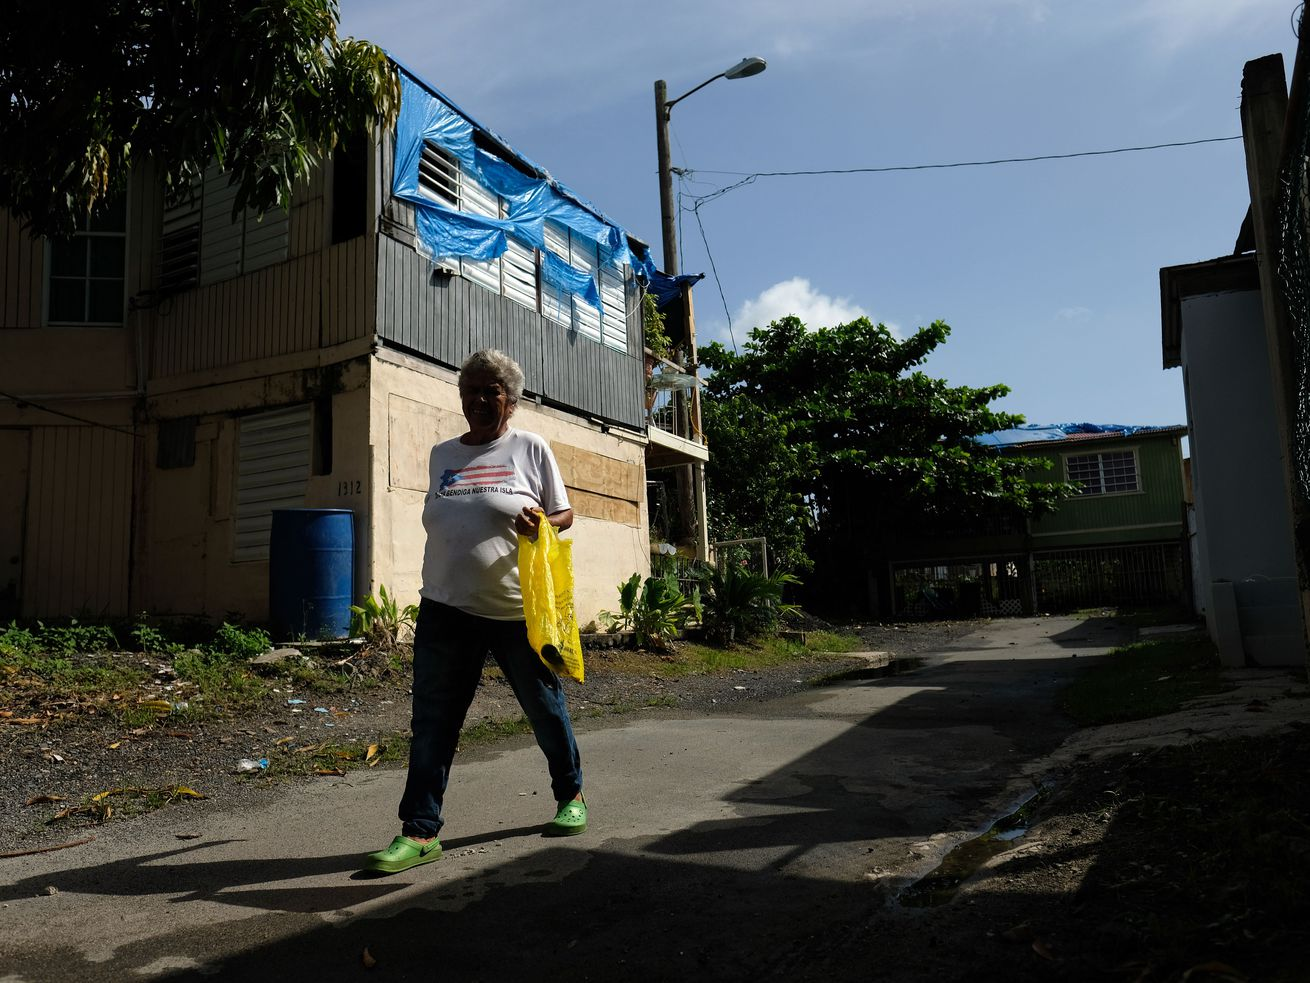 Puerto Rico faces uneven and underfunded recovery